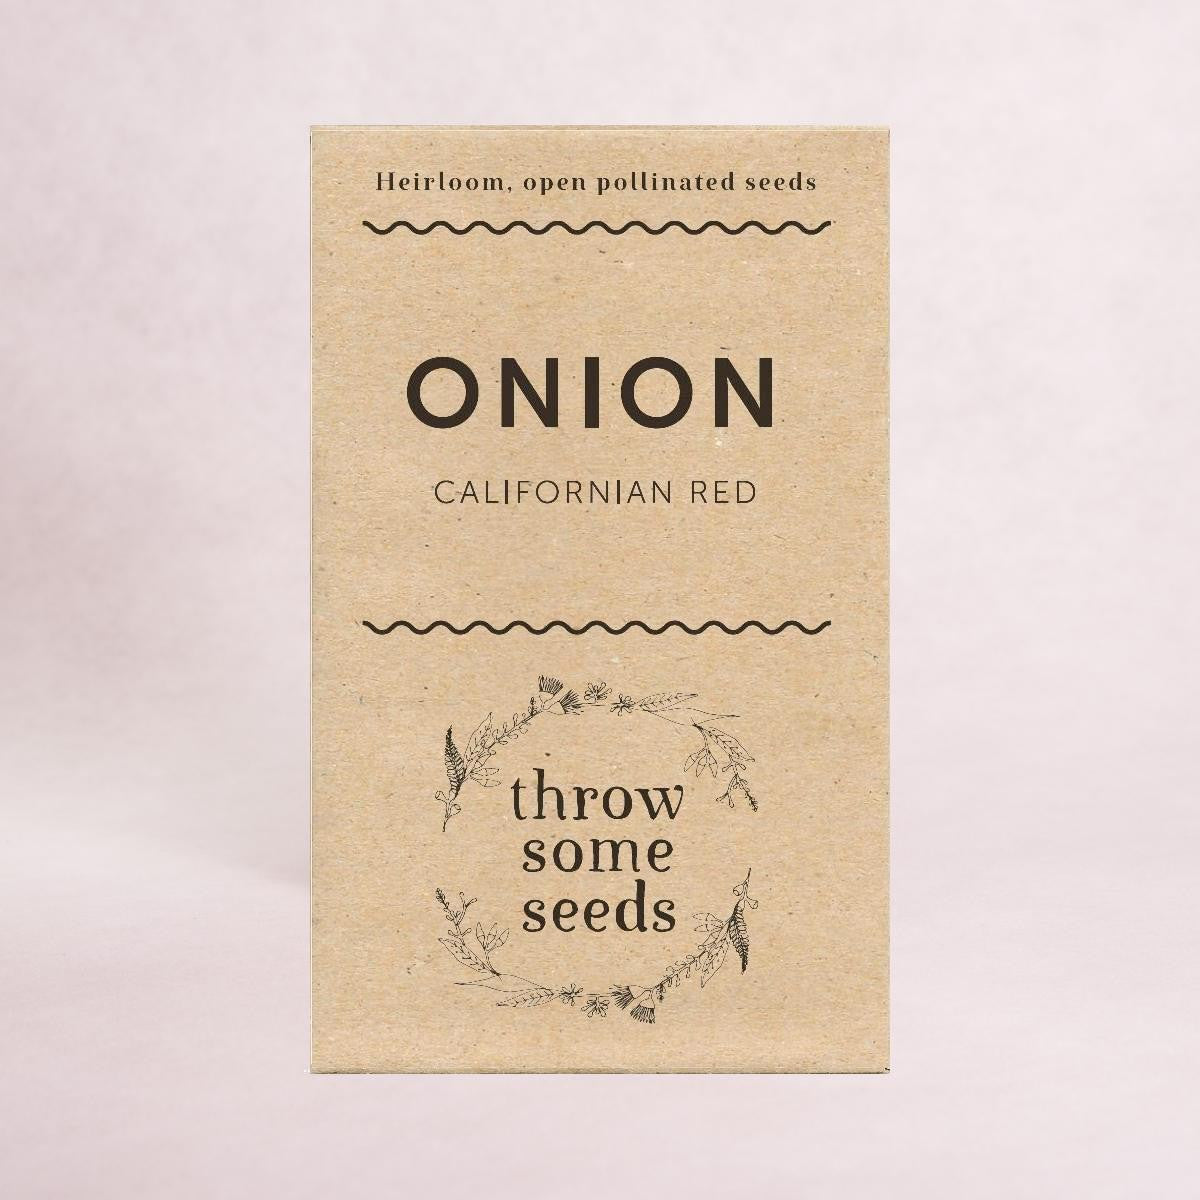 Onion (Californian Red) Seeds - Seeds - Throw Some Seeds - Australian gardening gifts and eco products online!